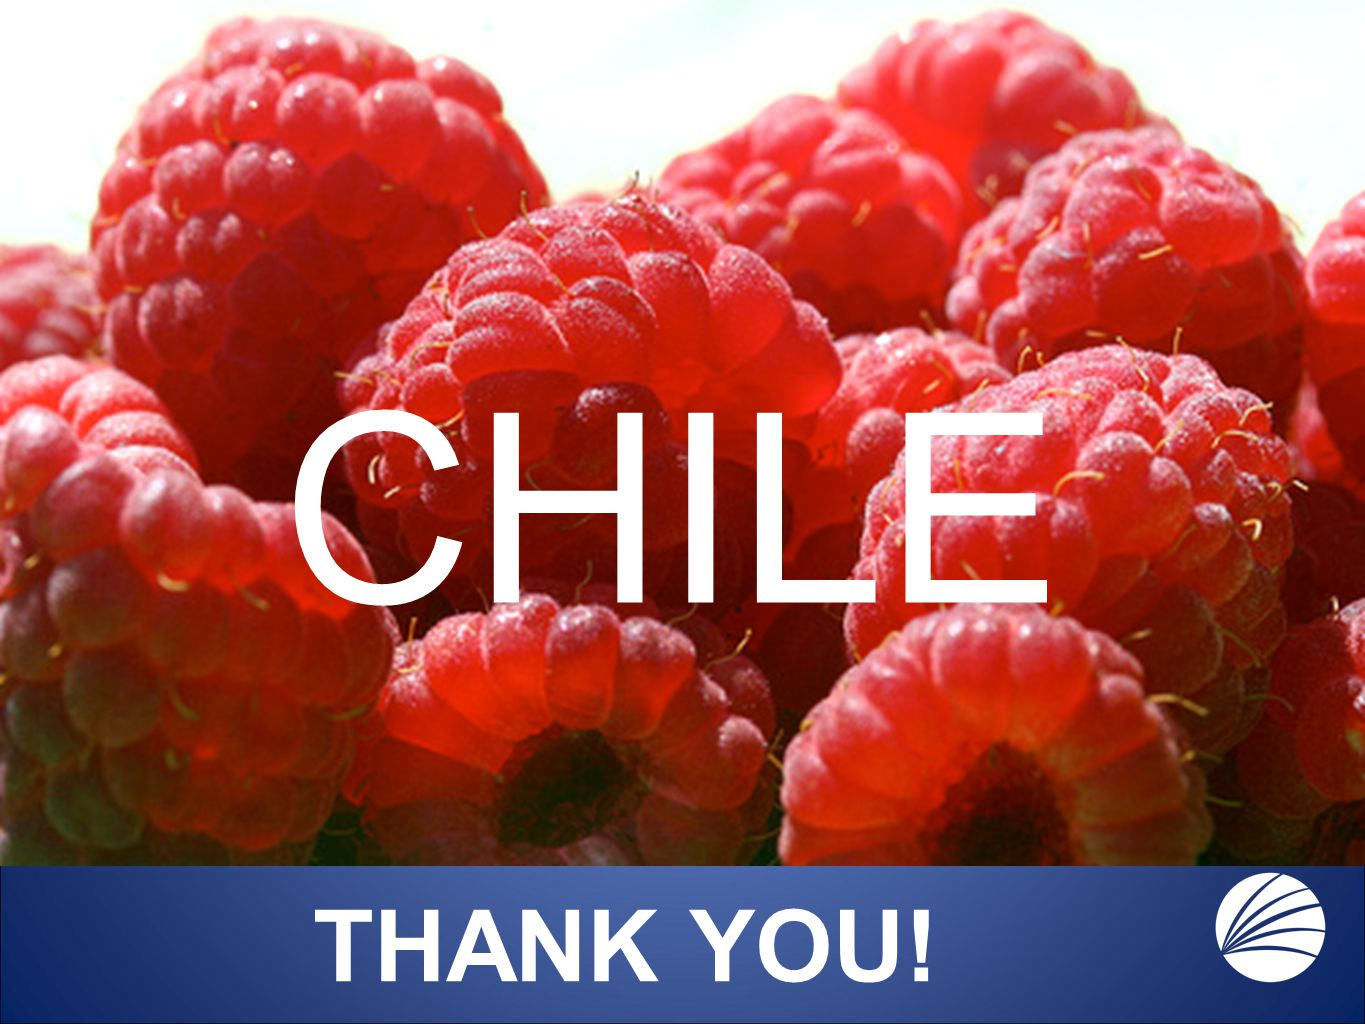 CHILE THANK YOU!